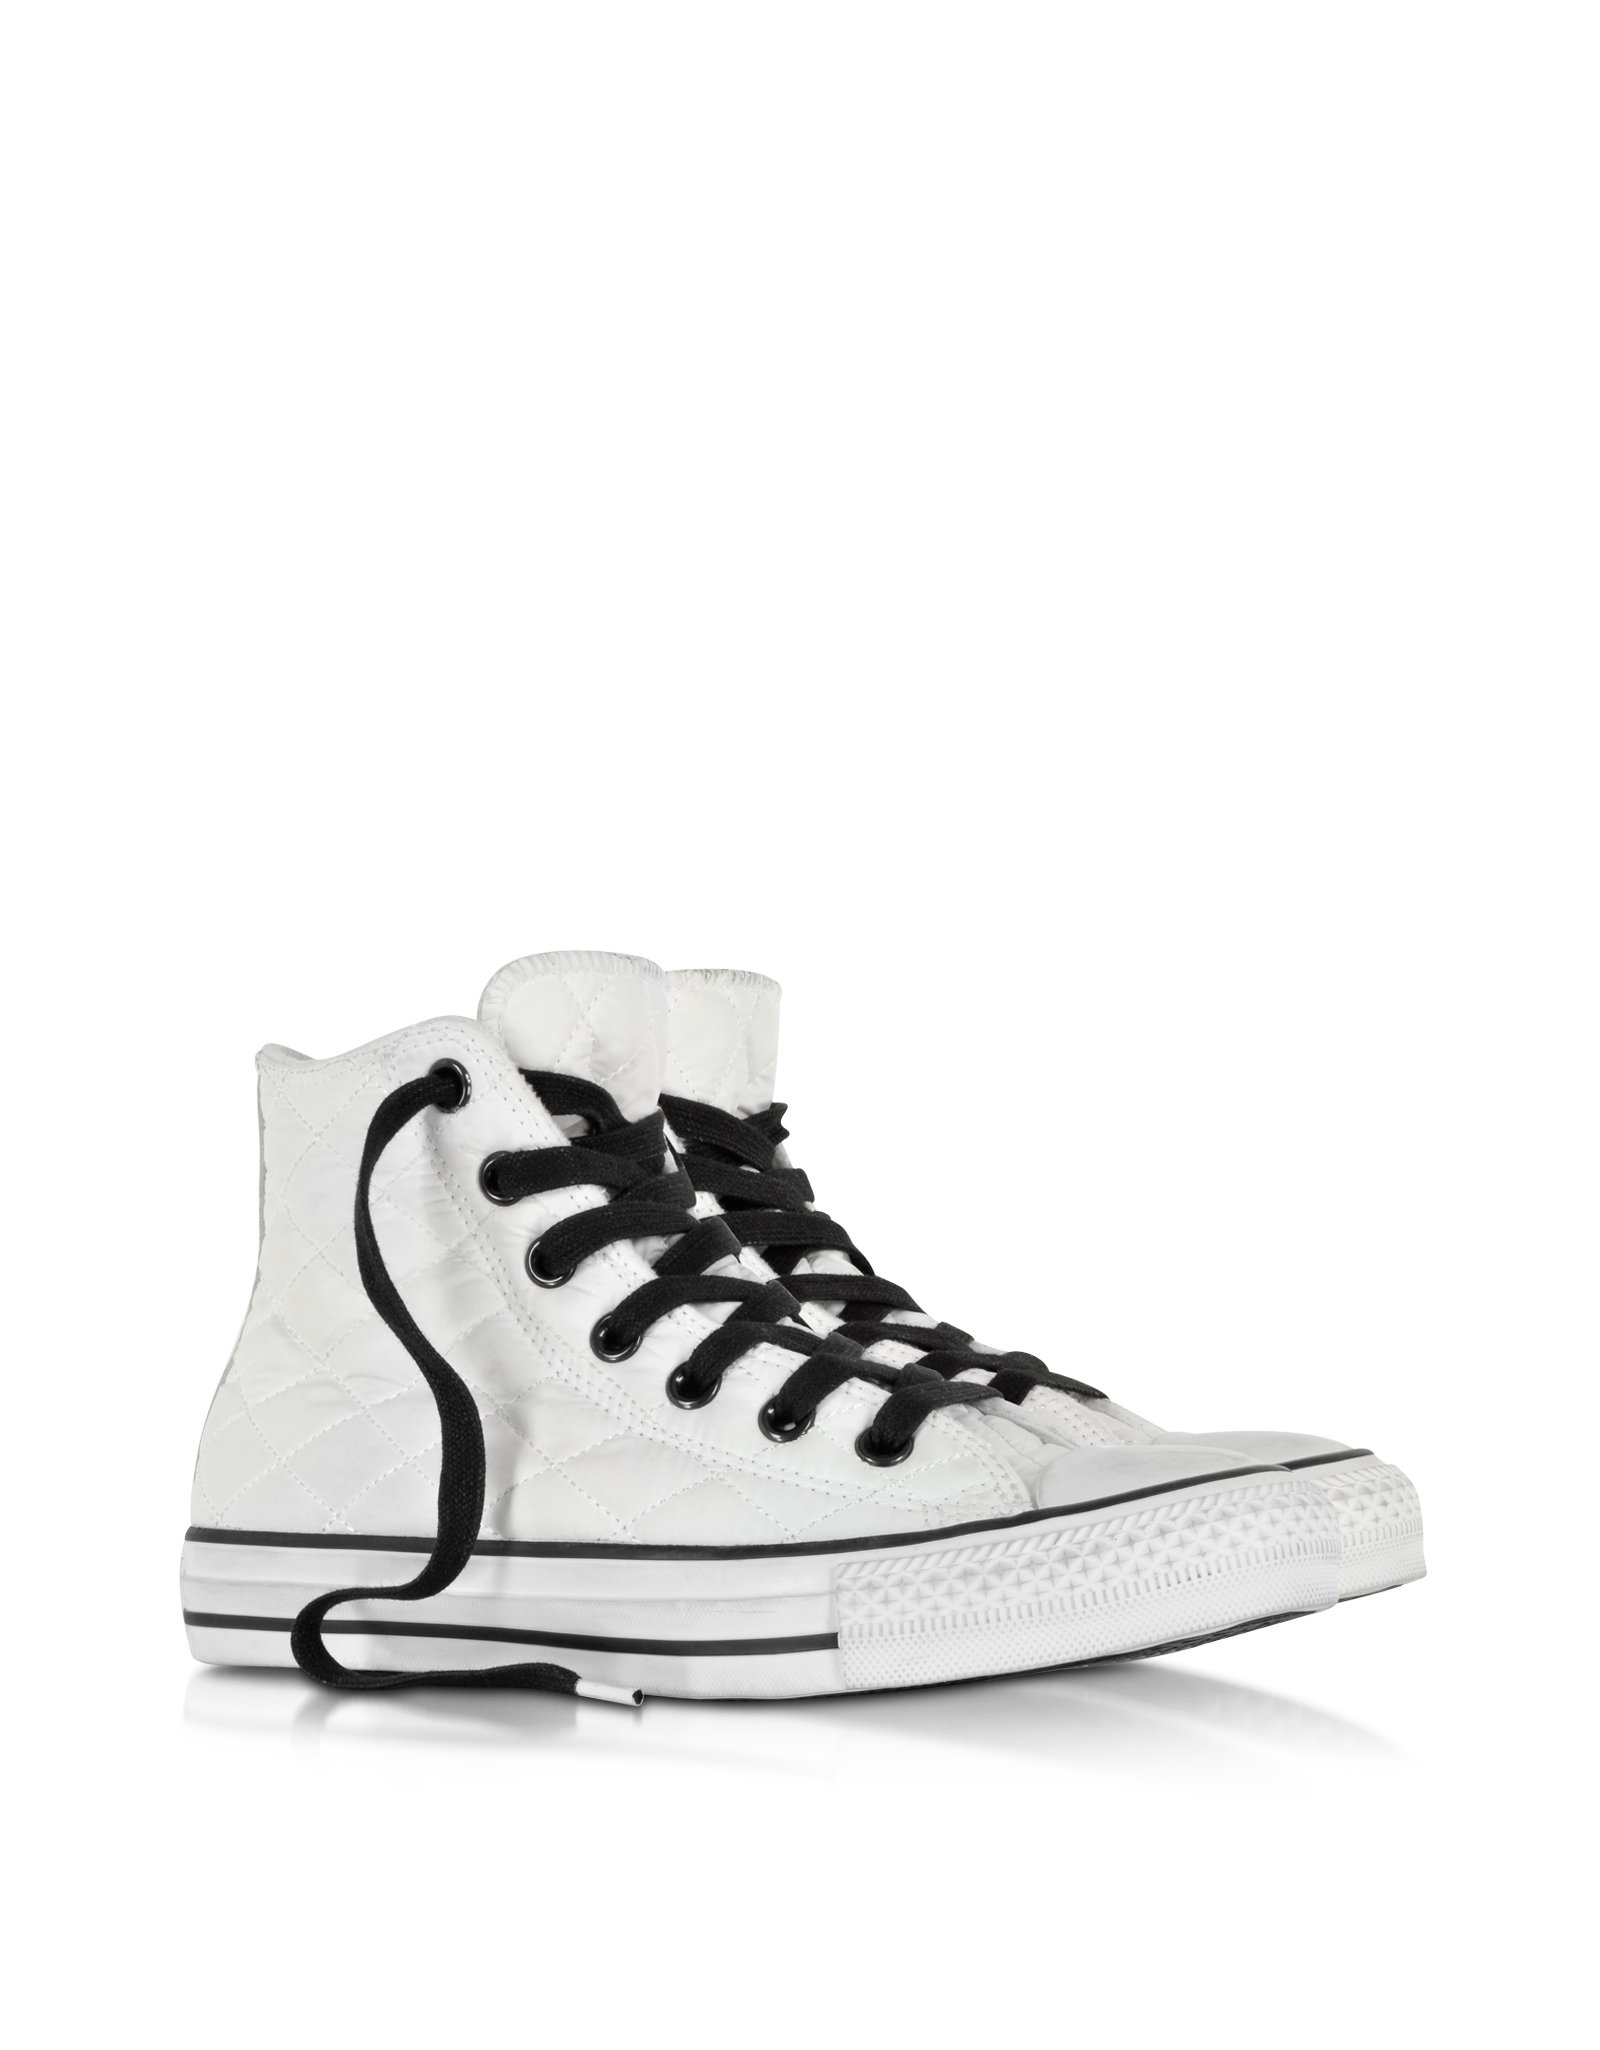 quilt p to buy saleauthorized white nighttime converse quilted uk chuck dealers brownconverse navy saleconverse trainers black shoes where sale star taylor low all hi